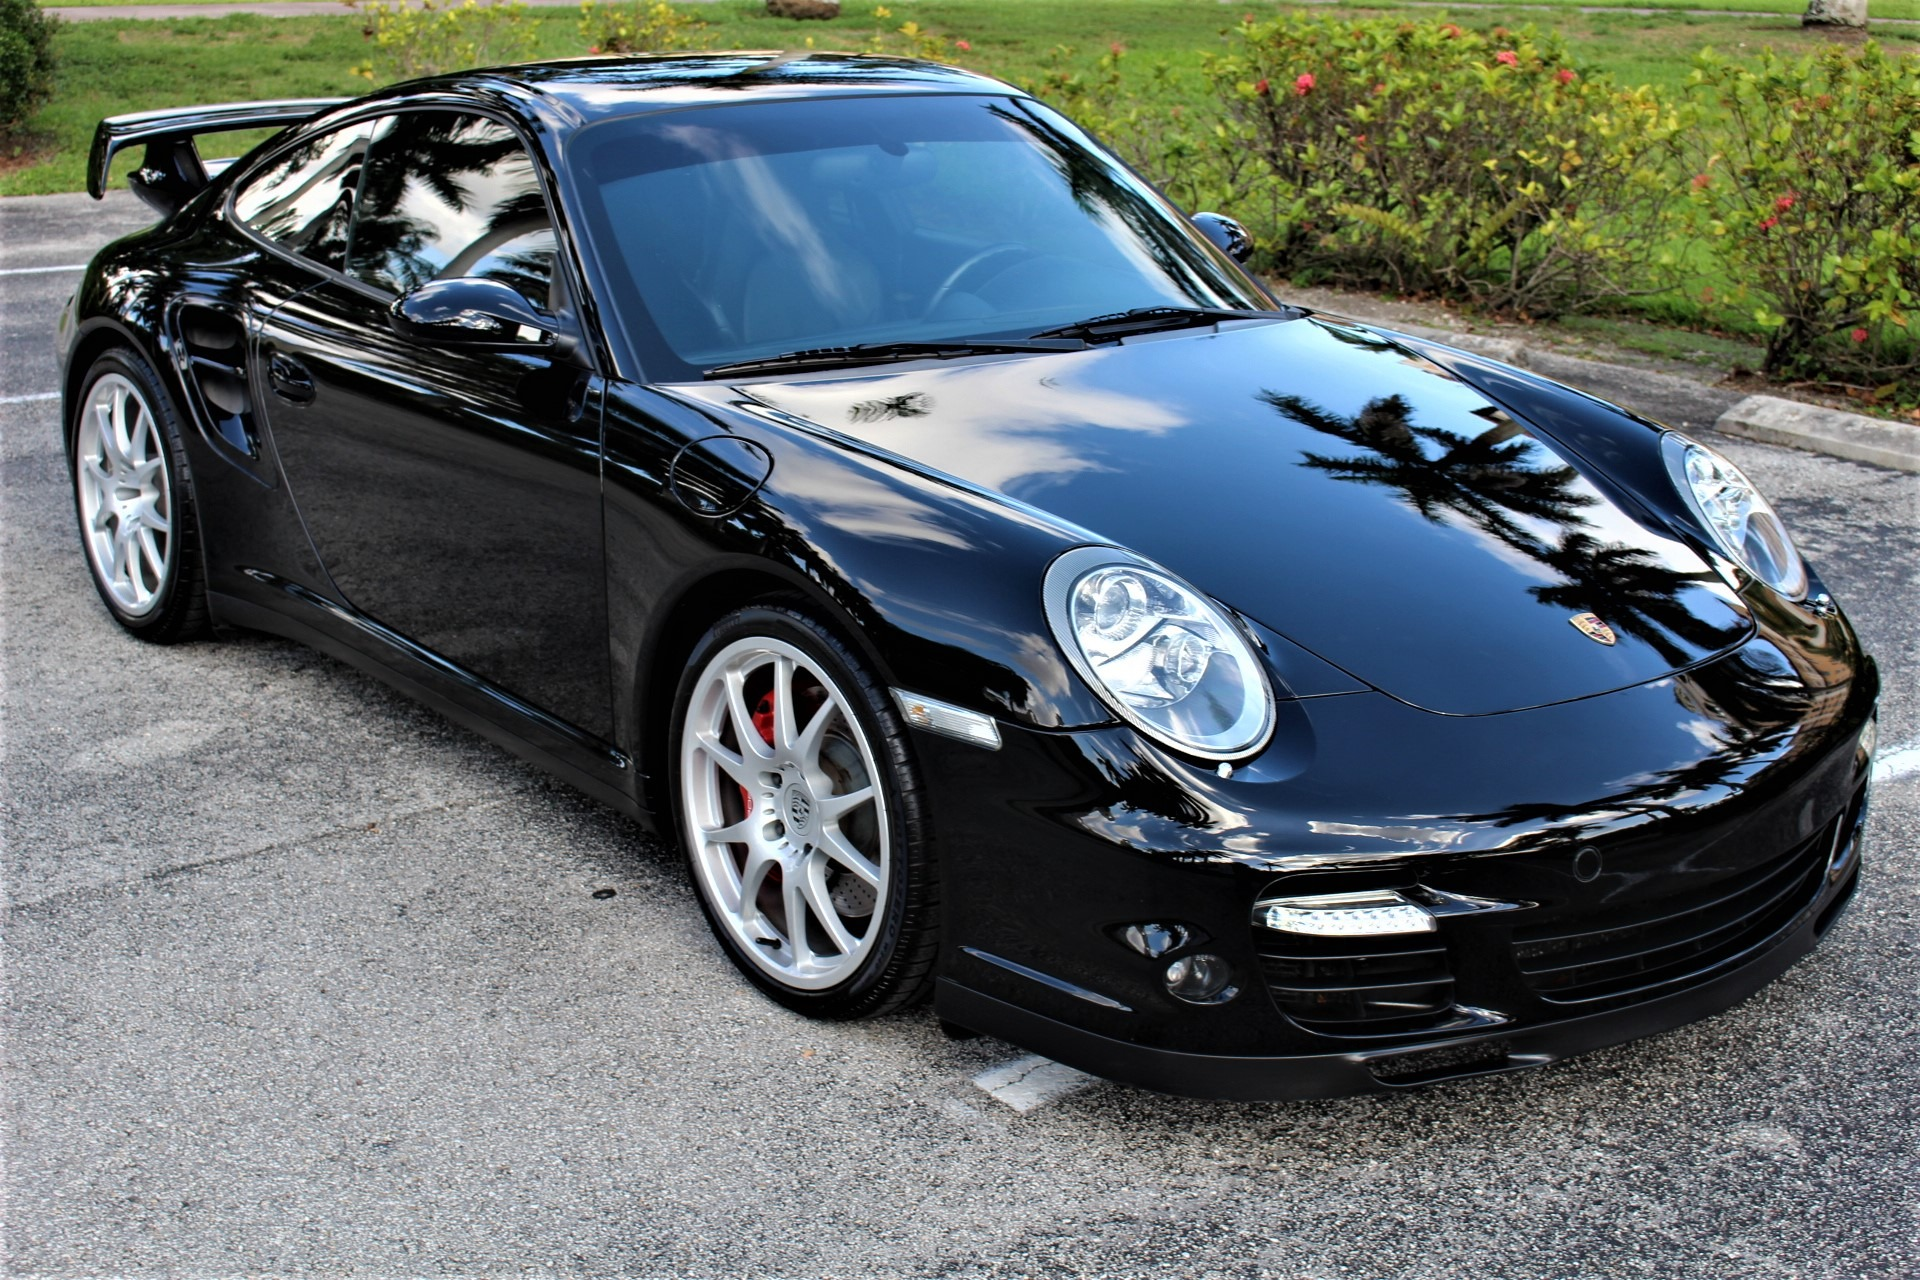 Used 2007 Porsche 911 Turbo for sale Sold at The Gables Sports Cars in Miami FL 33146 4